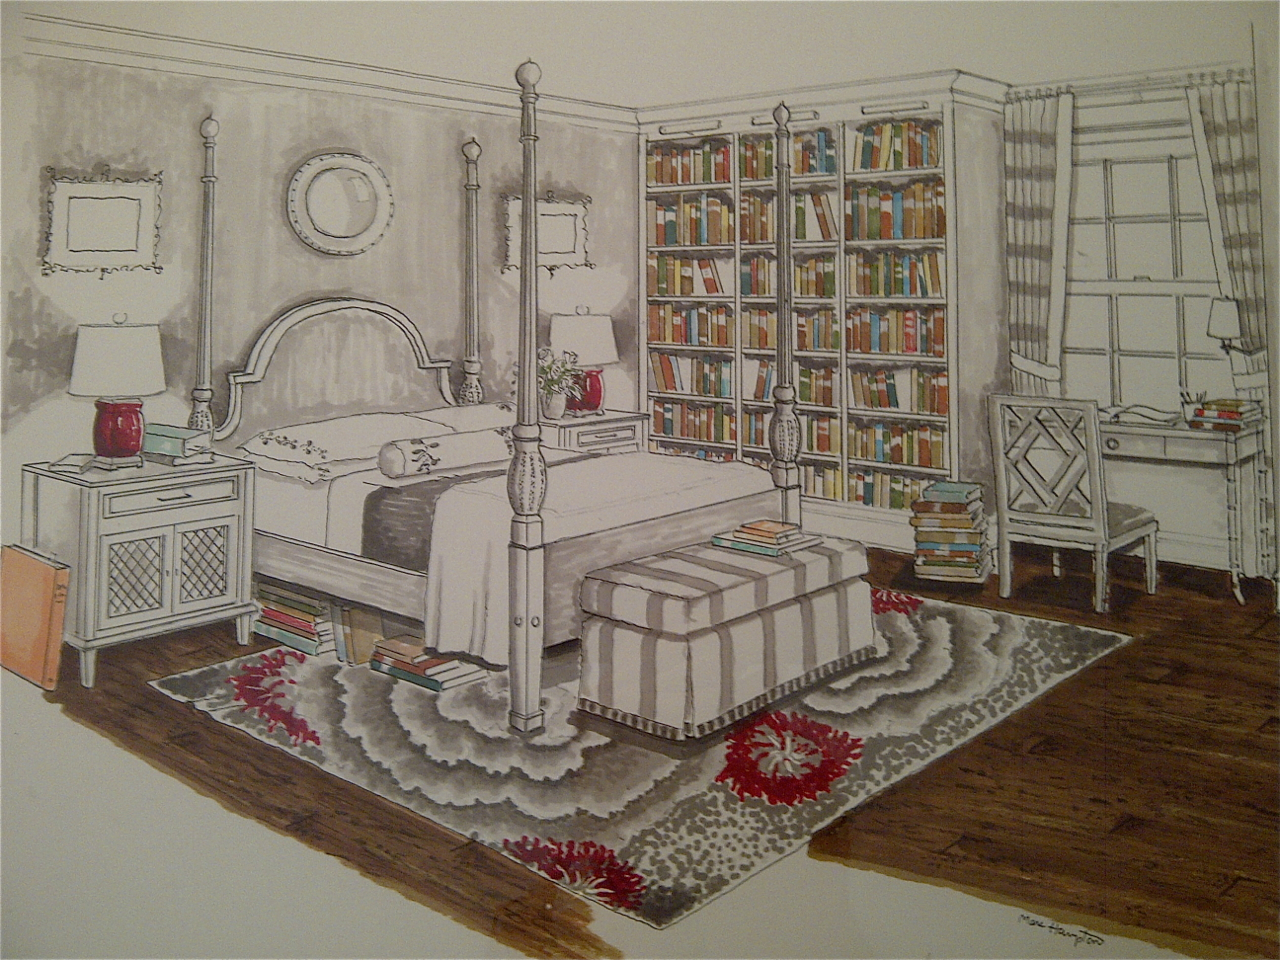 The rendering perspective a bedroom for book lovers for Bedroom ideas for book lovers